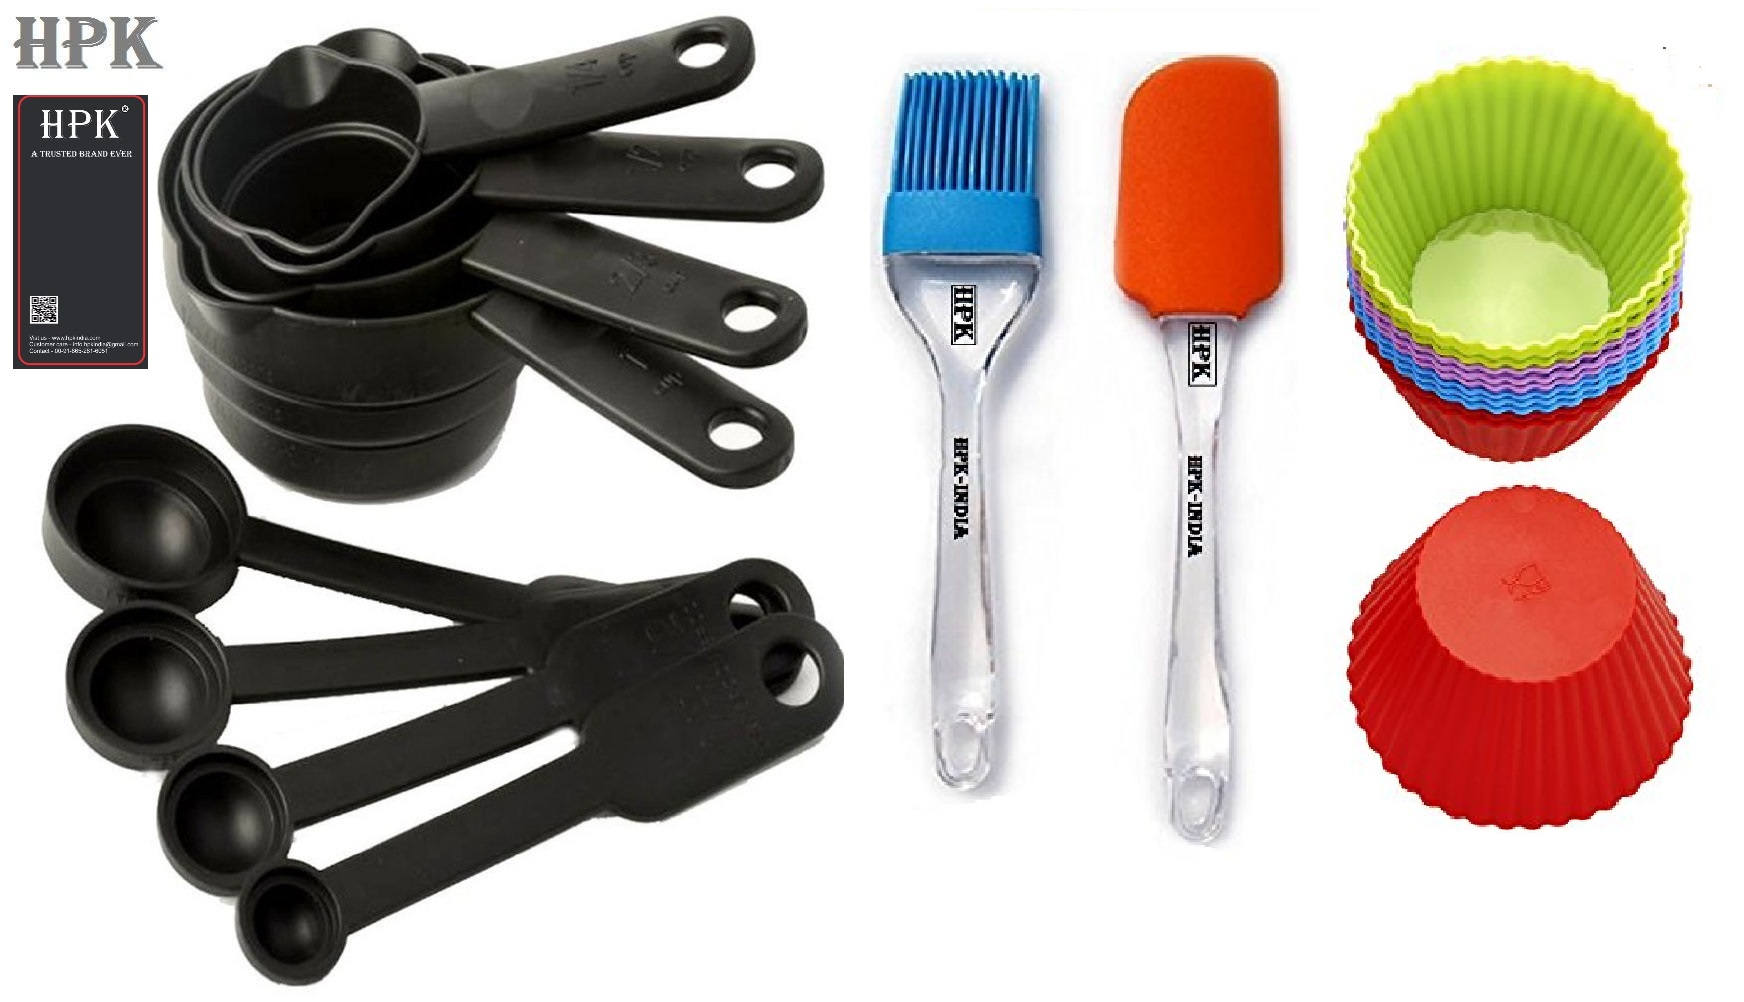 Hpk 8 Piece Measuring Cups & Spoons  2 Pcs Silicone Spatula And Pastry Brush round mold